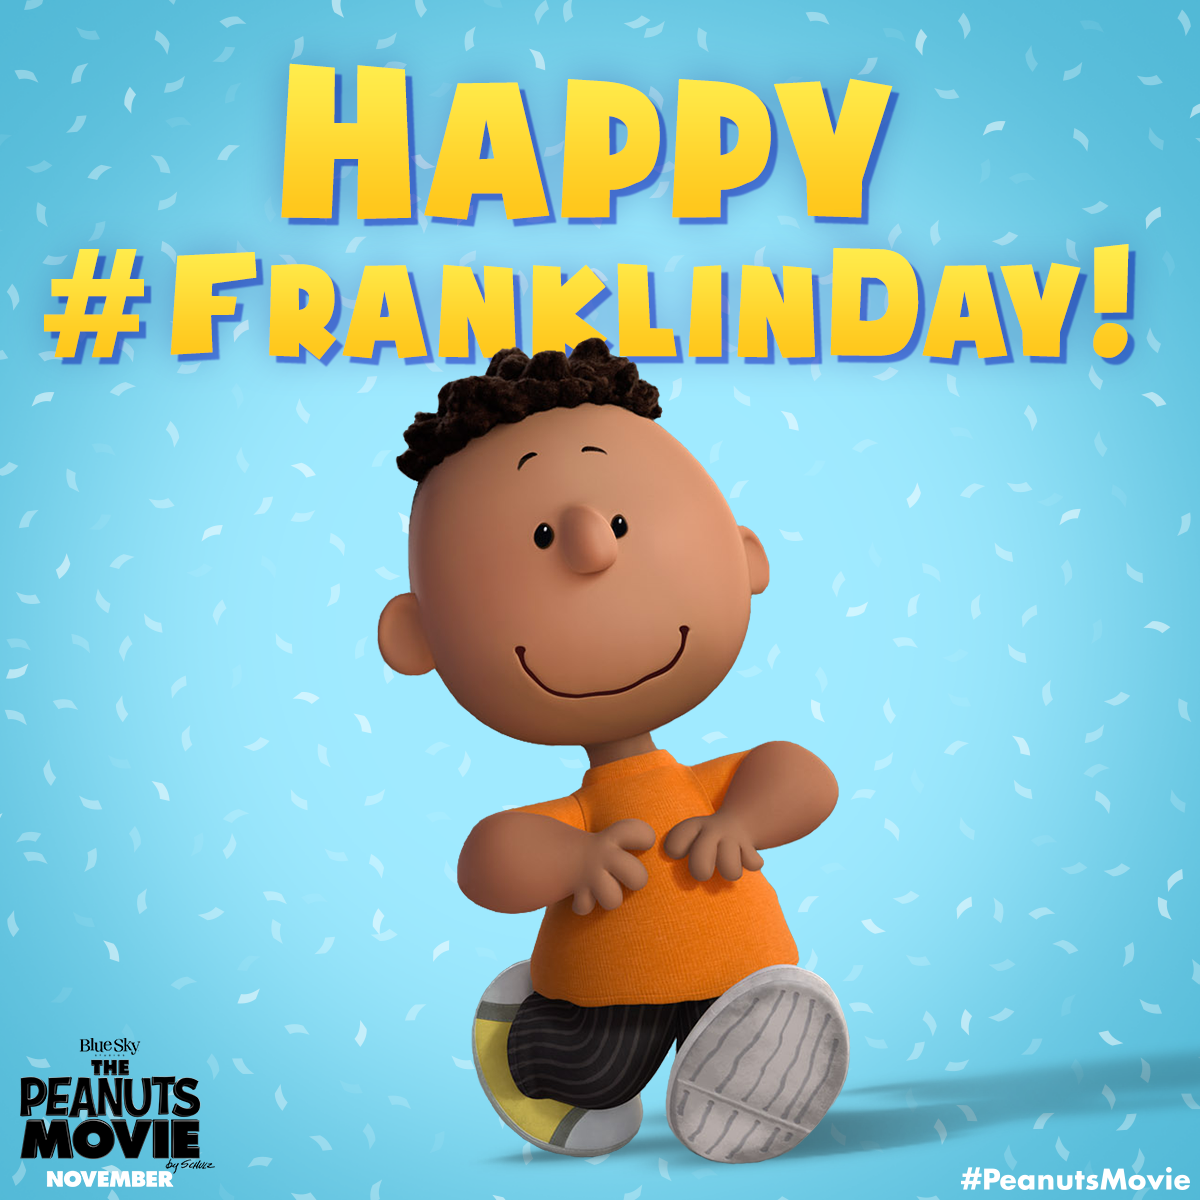 Happy Franklin Day From Charles Schulz's Peanuts